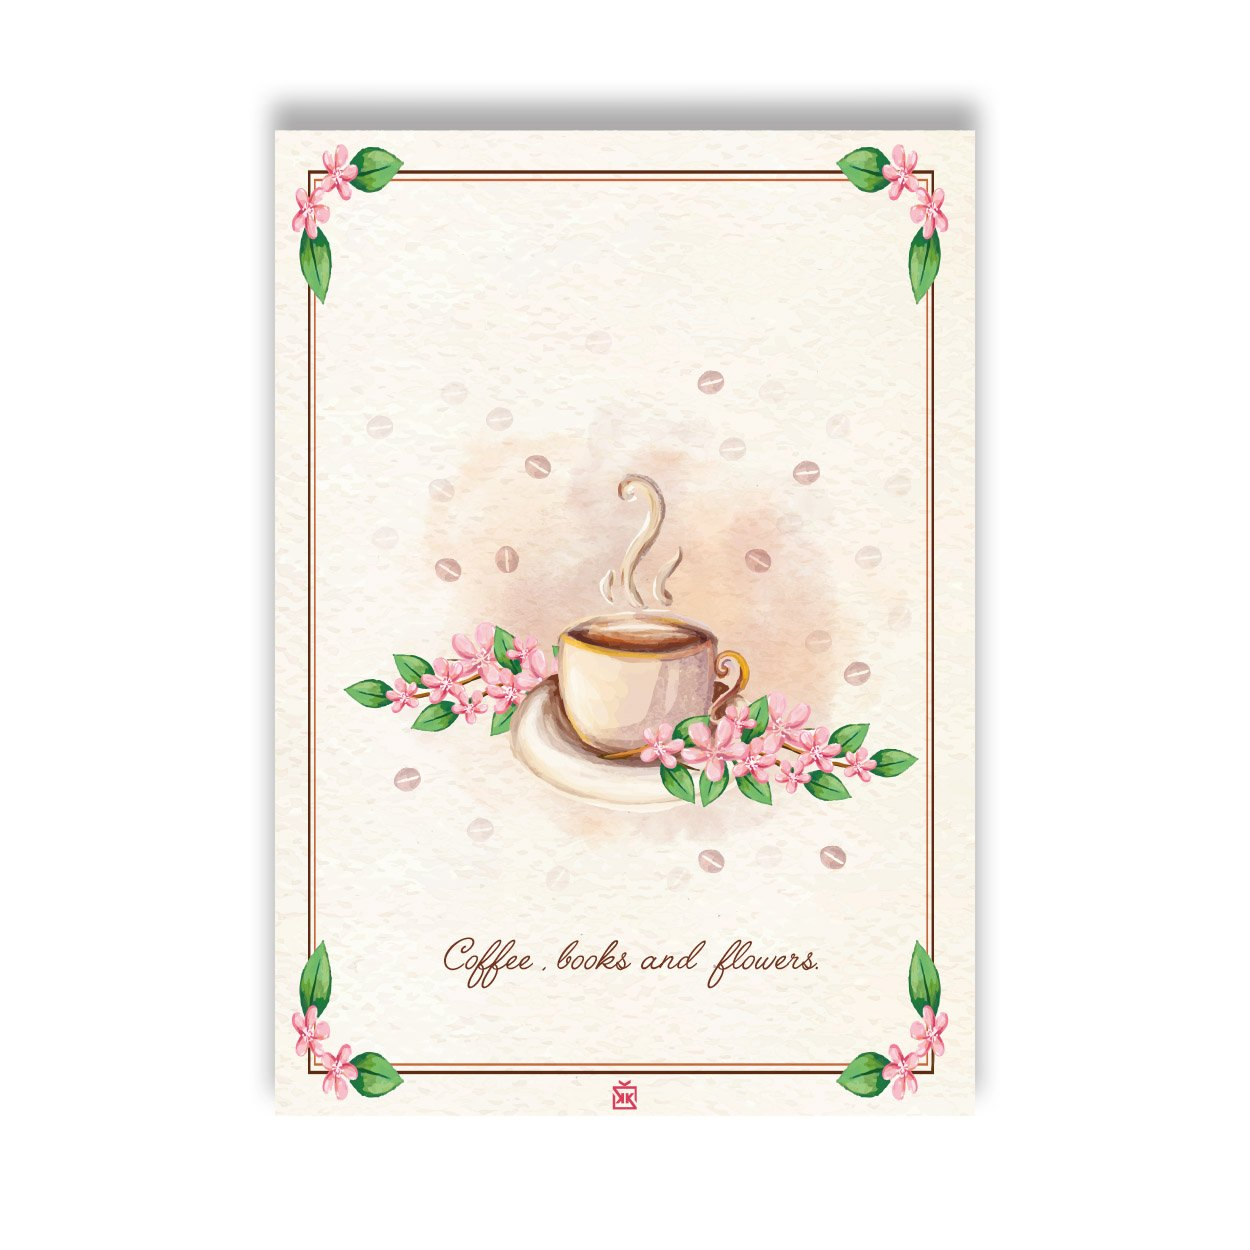 471059-coffee-books-flowers-motto-karti